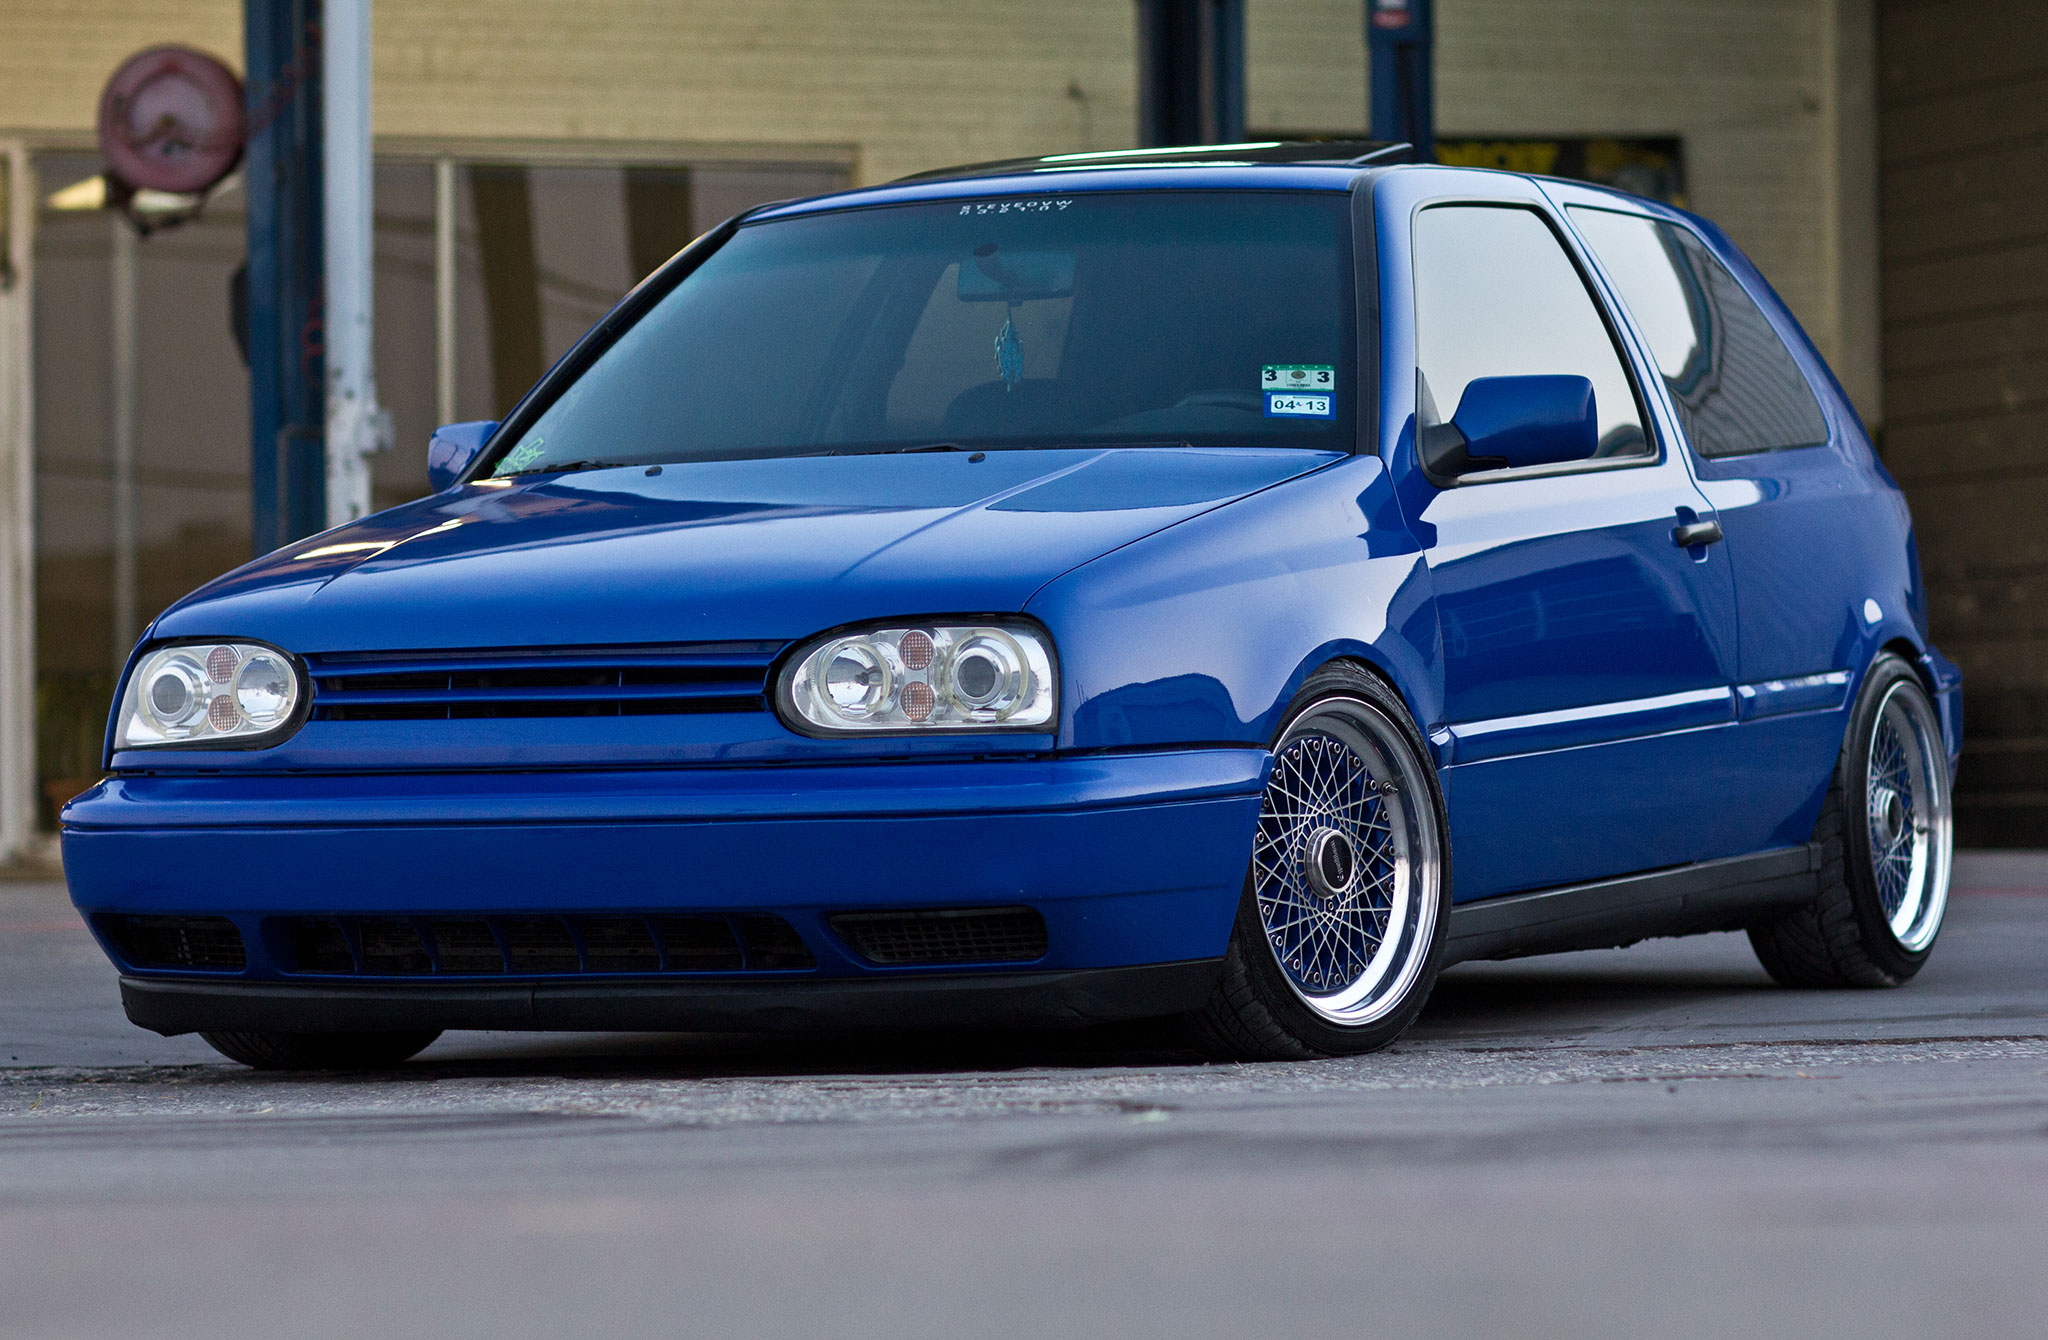 1997 volkswagen gti vr6 drivers edition shaved front bumper 03 [ 2048 x 1340 Pixel ]